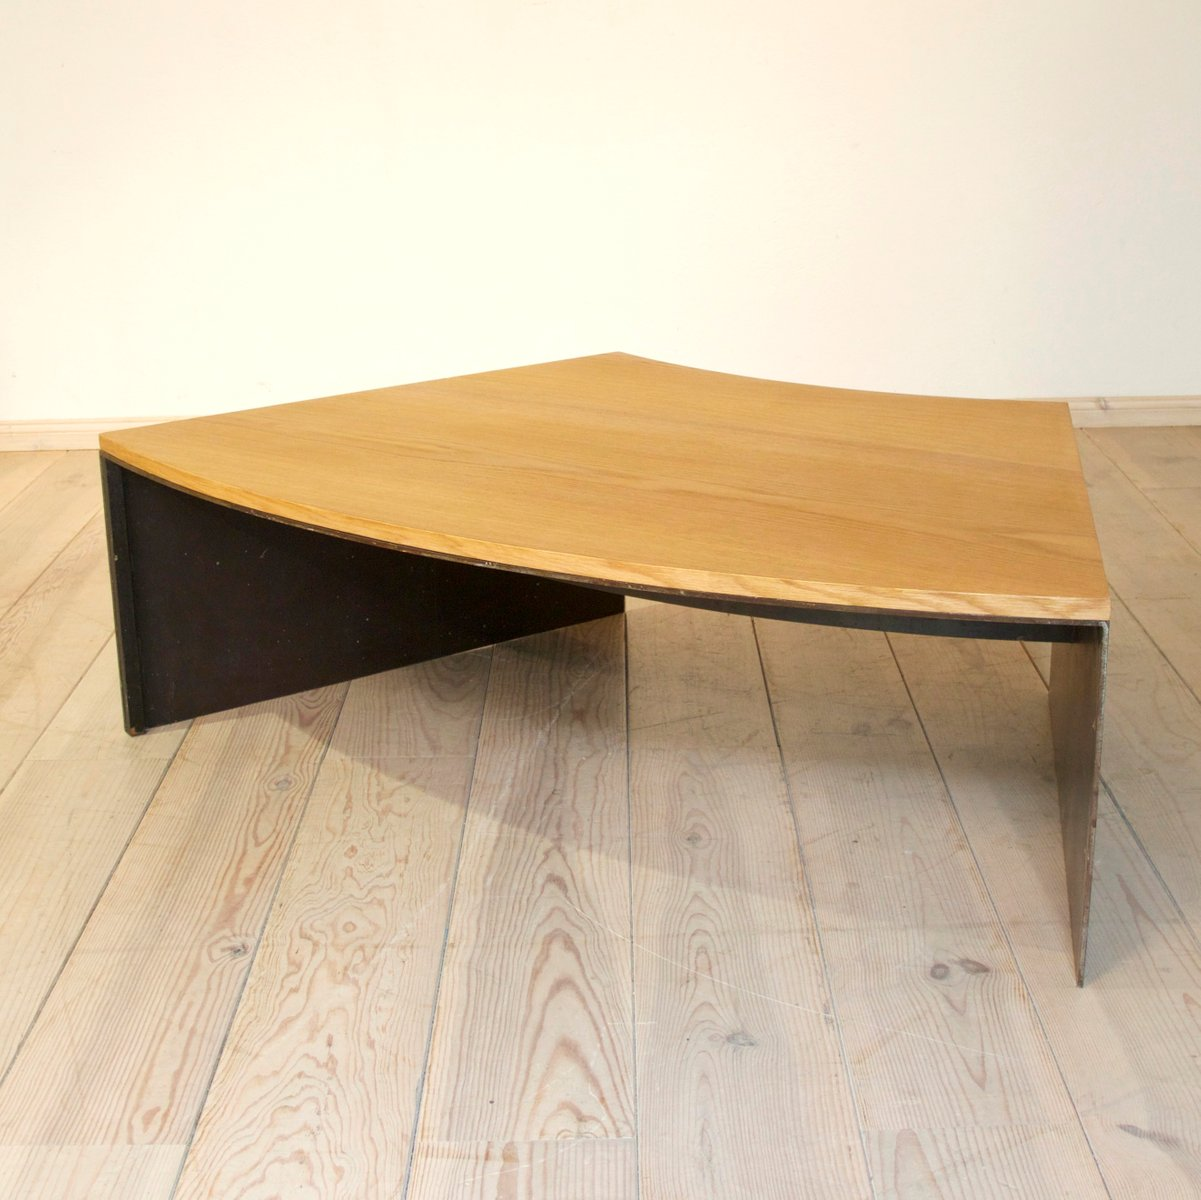 Vintage Metal And Oak Coffee Table For Sale At Pamono